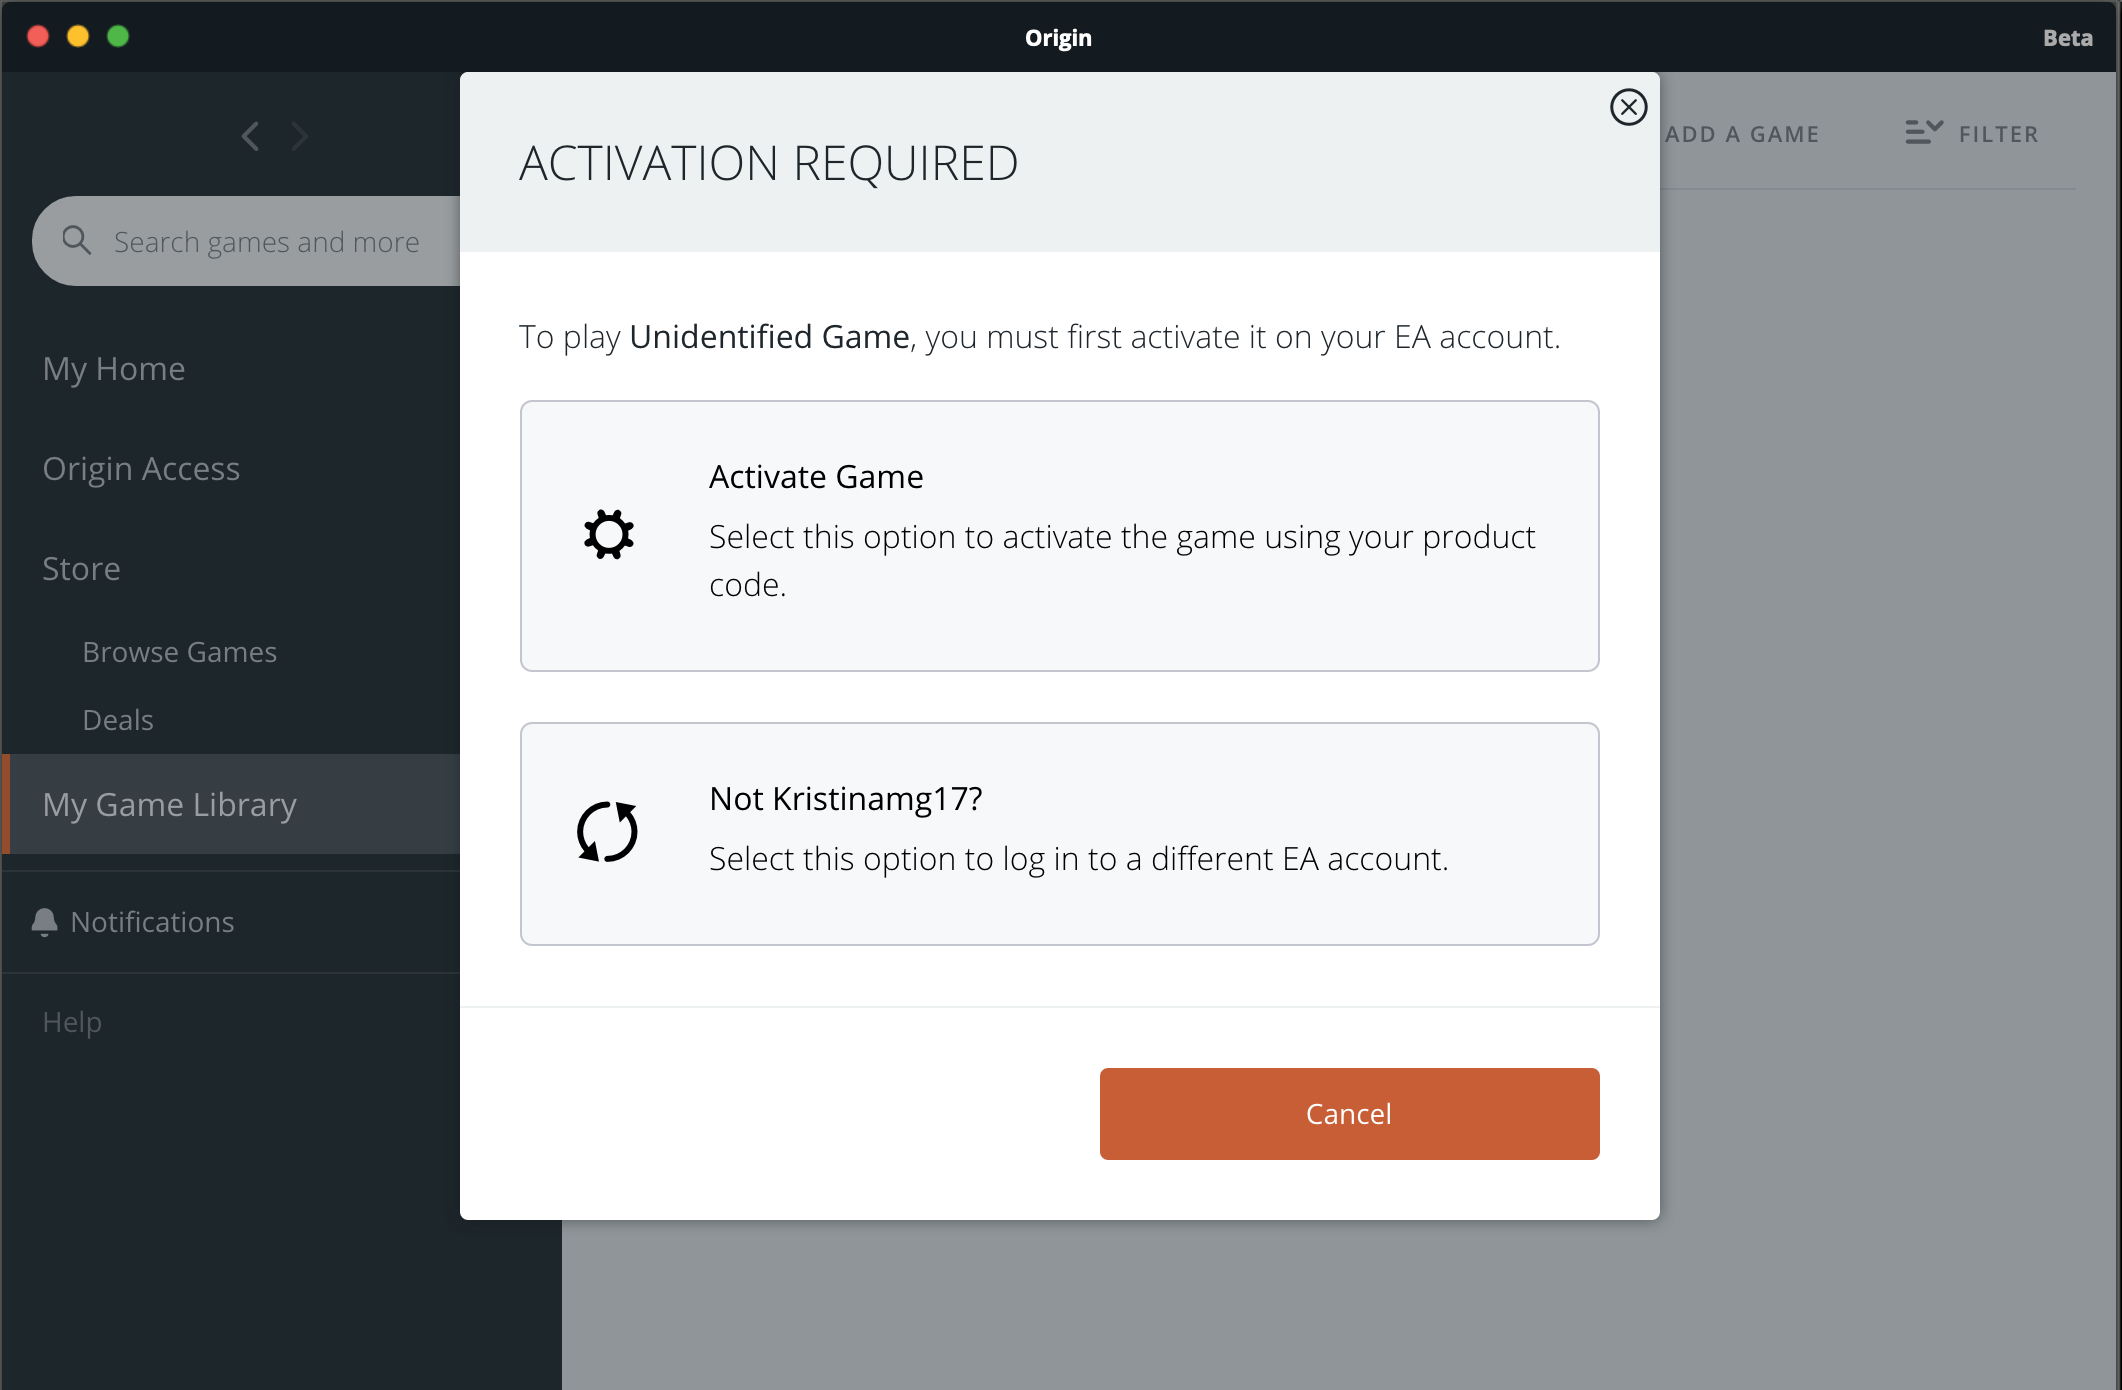 Origin Sims 3 EP download button not working - Answer HQ